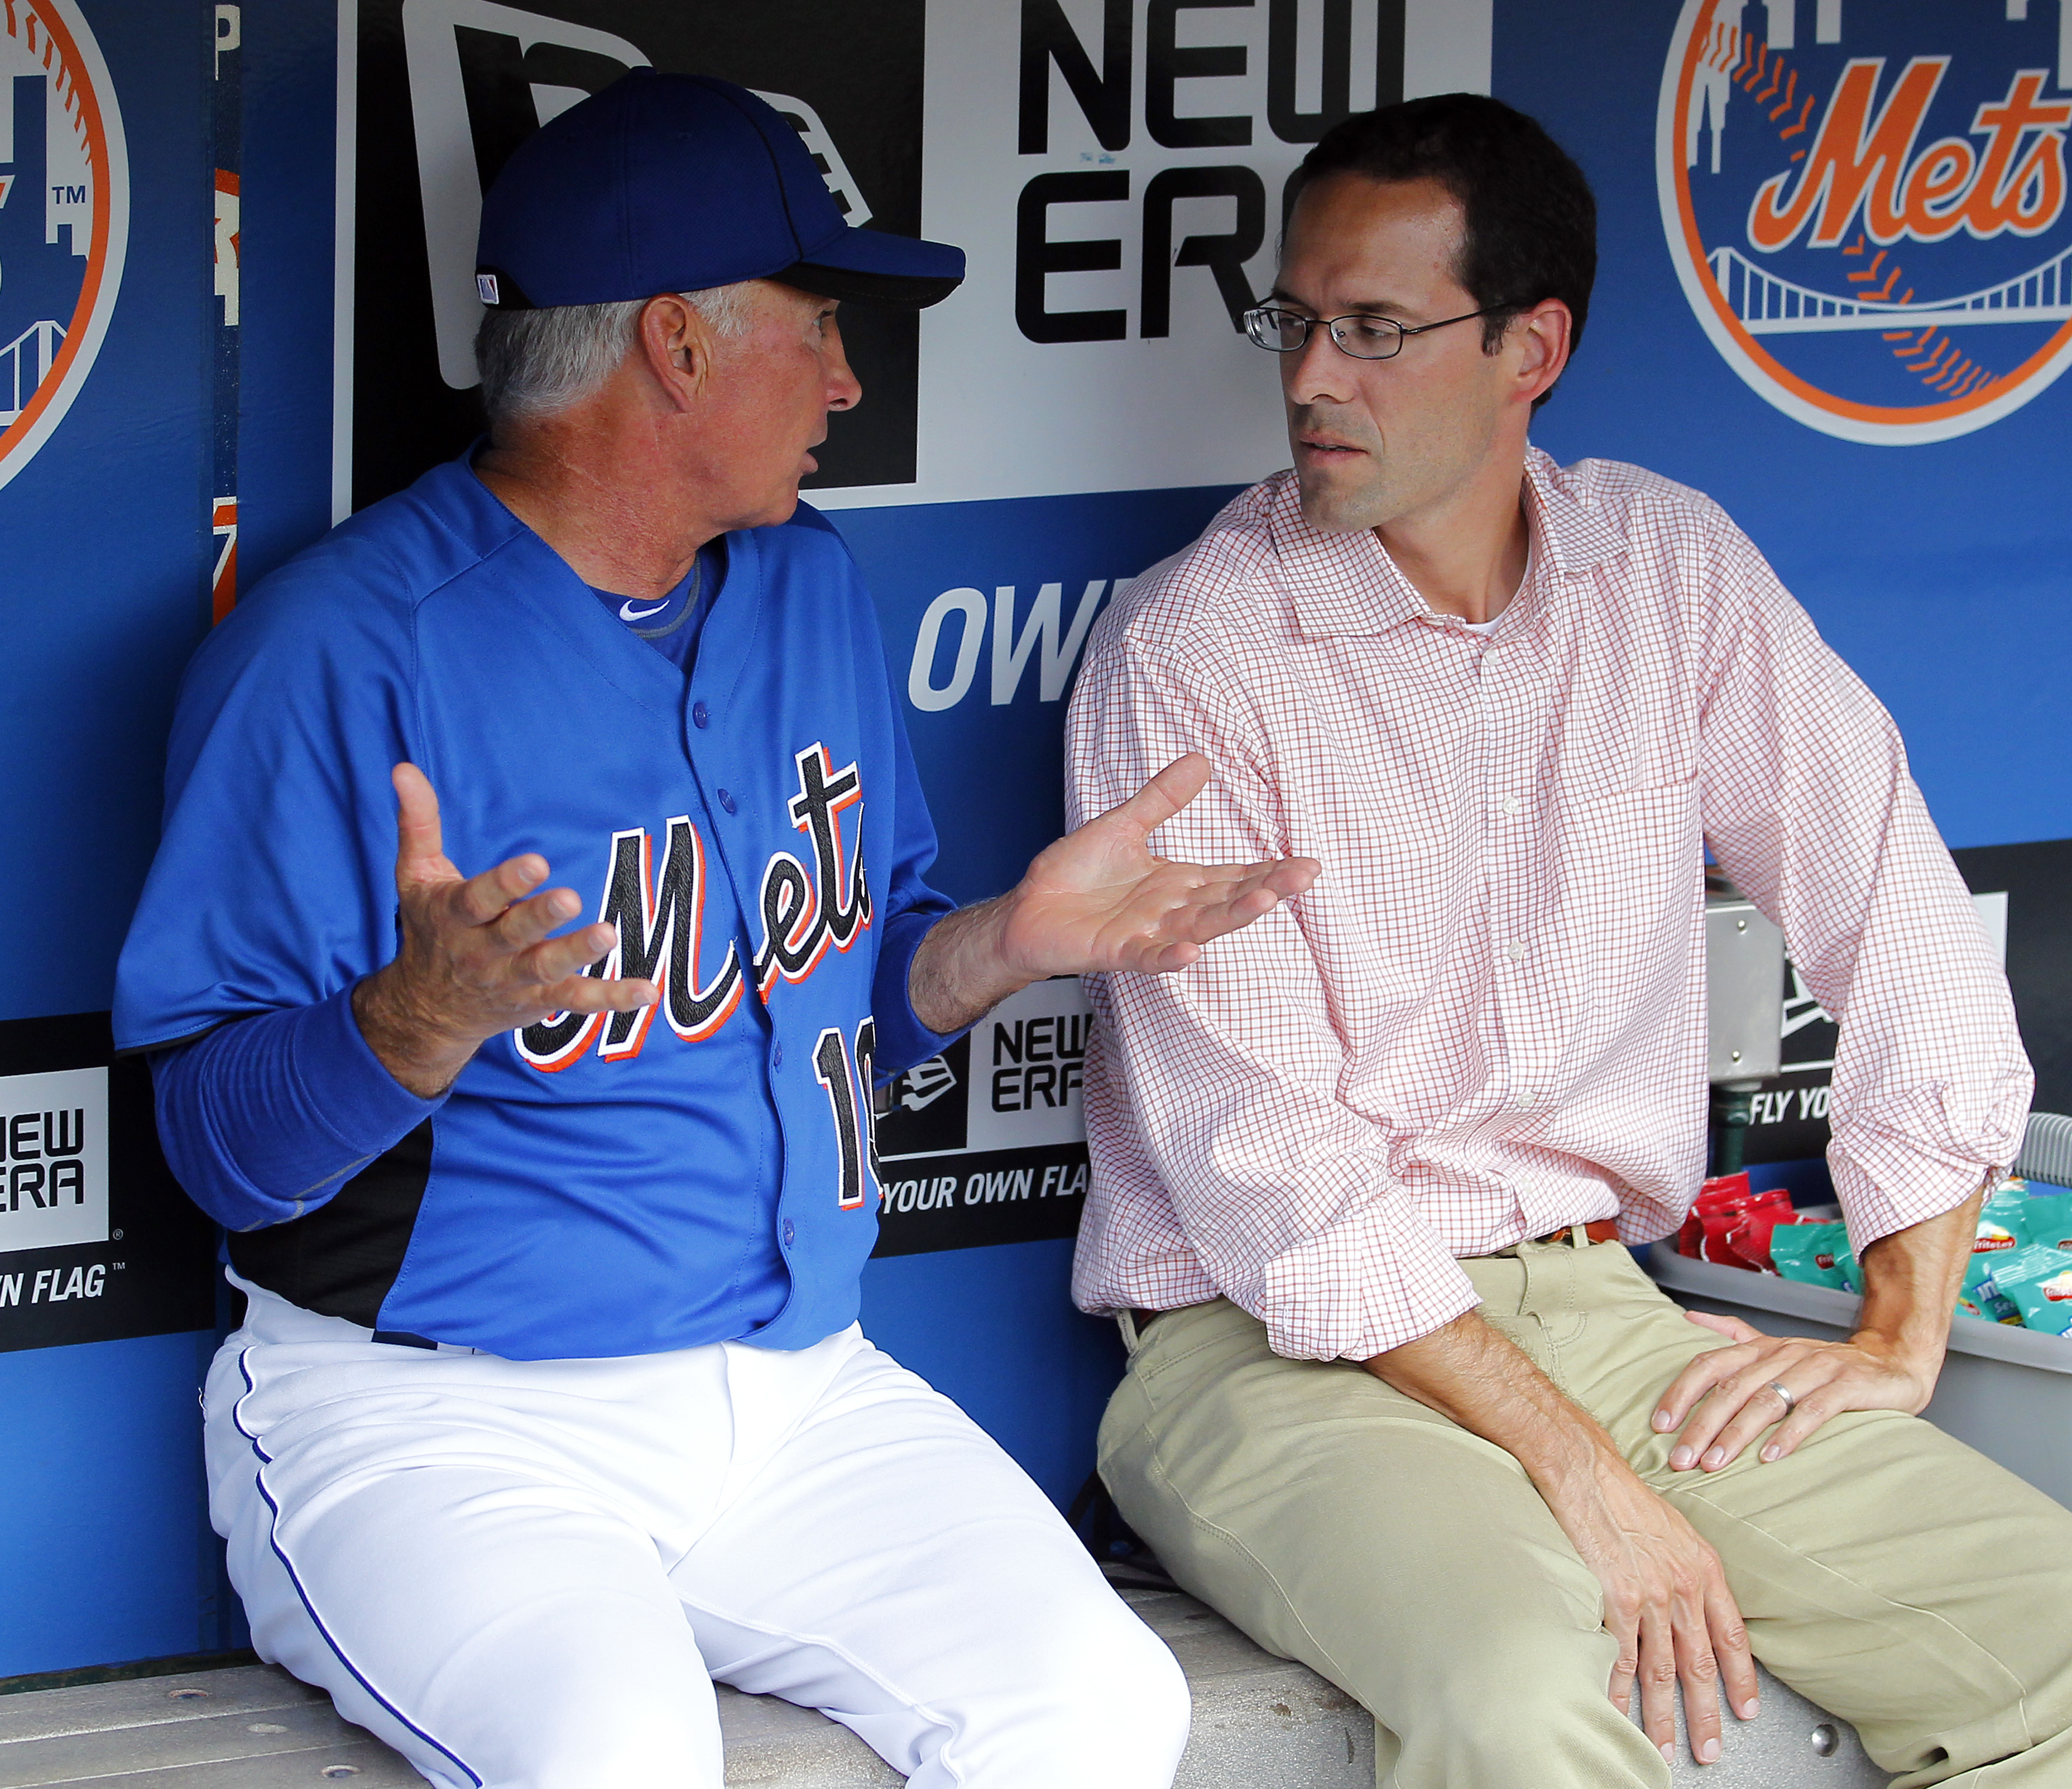 New York Mets manager Terry Collins talks with Mets VP of Player Development Paul DePodesta in the dugout before the game against the San Diego Padres in New York, Monday, Aug. 8, 2011. (AP Photo/Paul J. Bereswill)